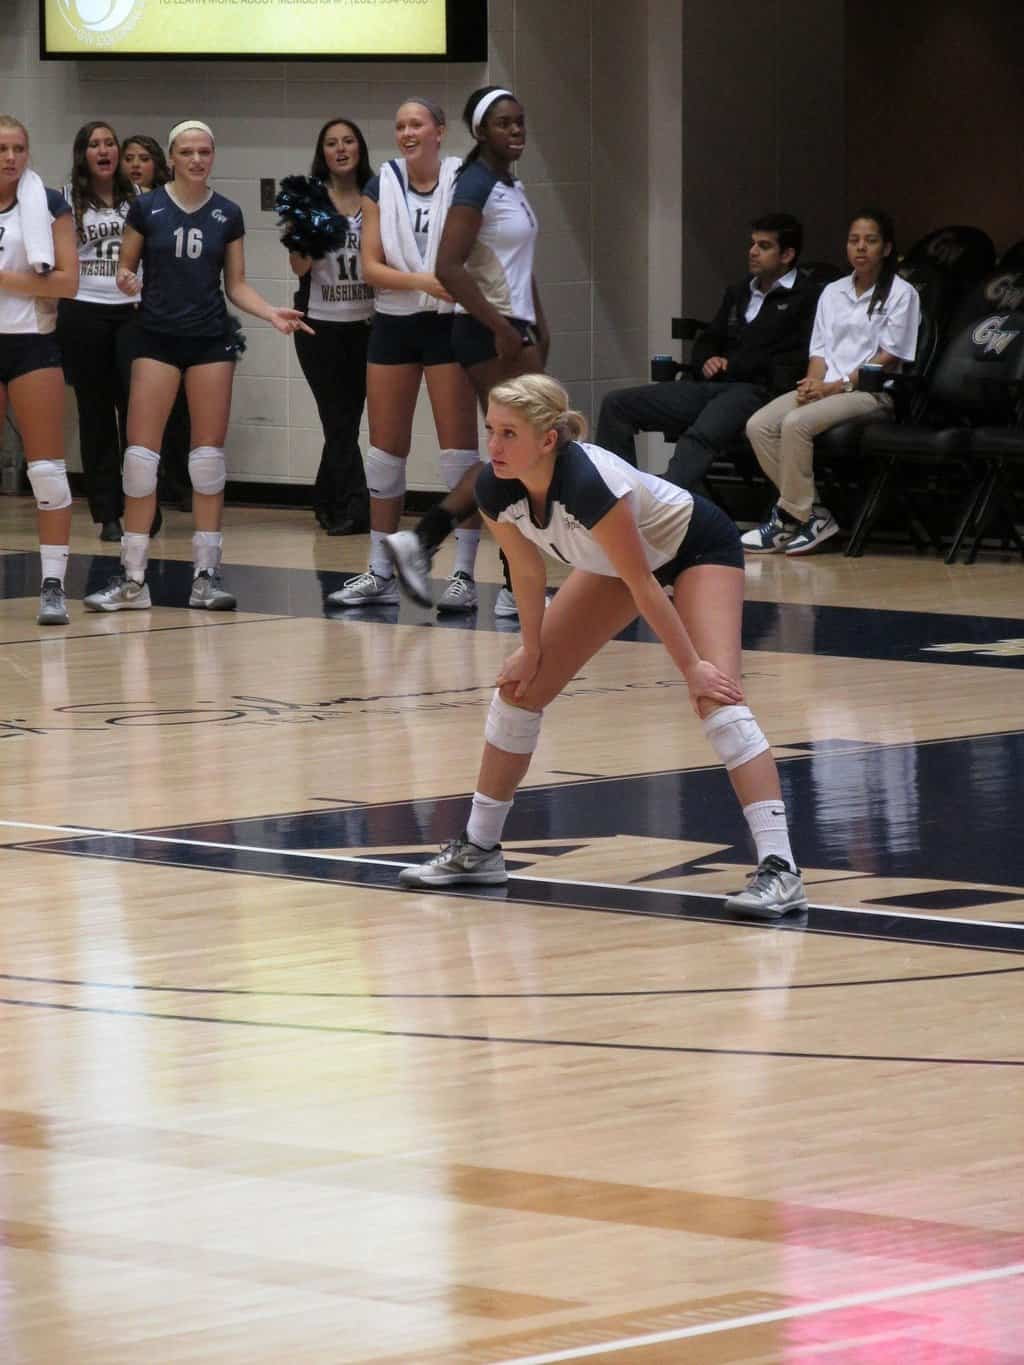 Female volleyball player in ready position